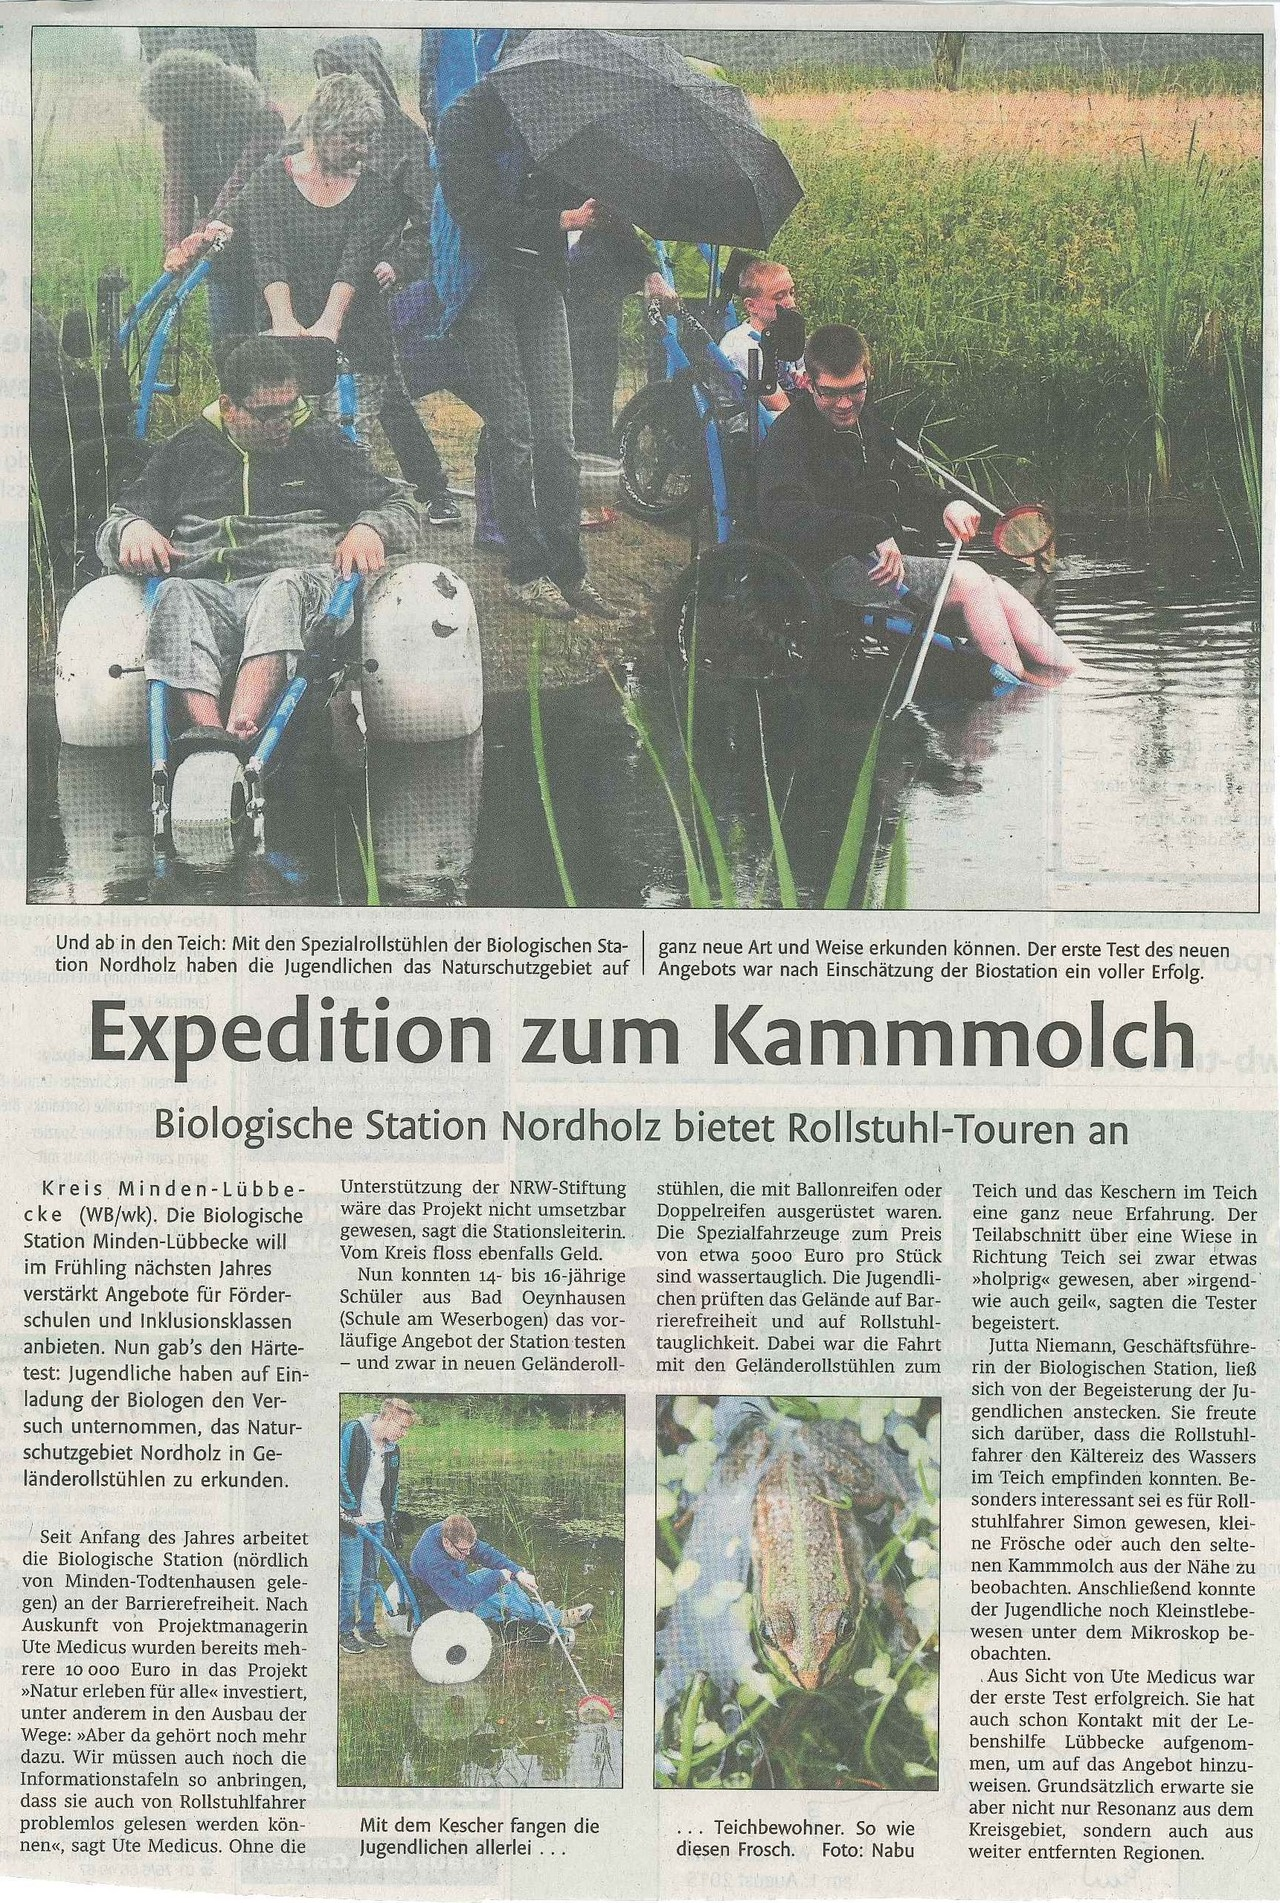 Expedition zum Kammmolch